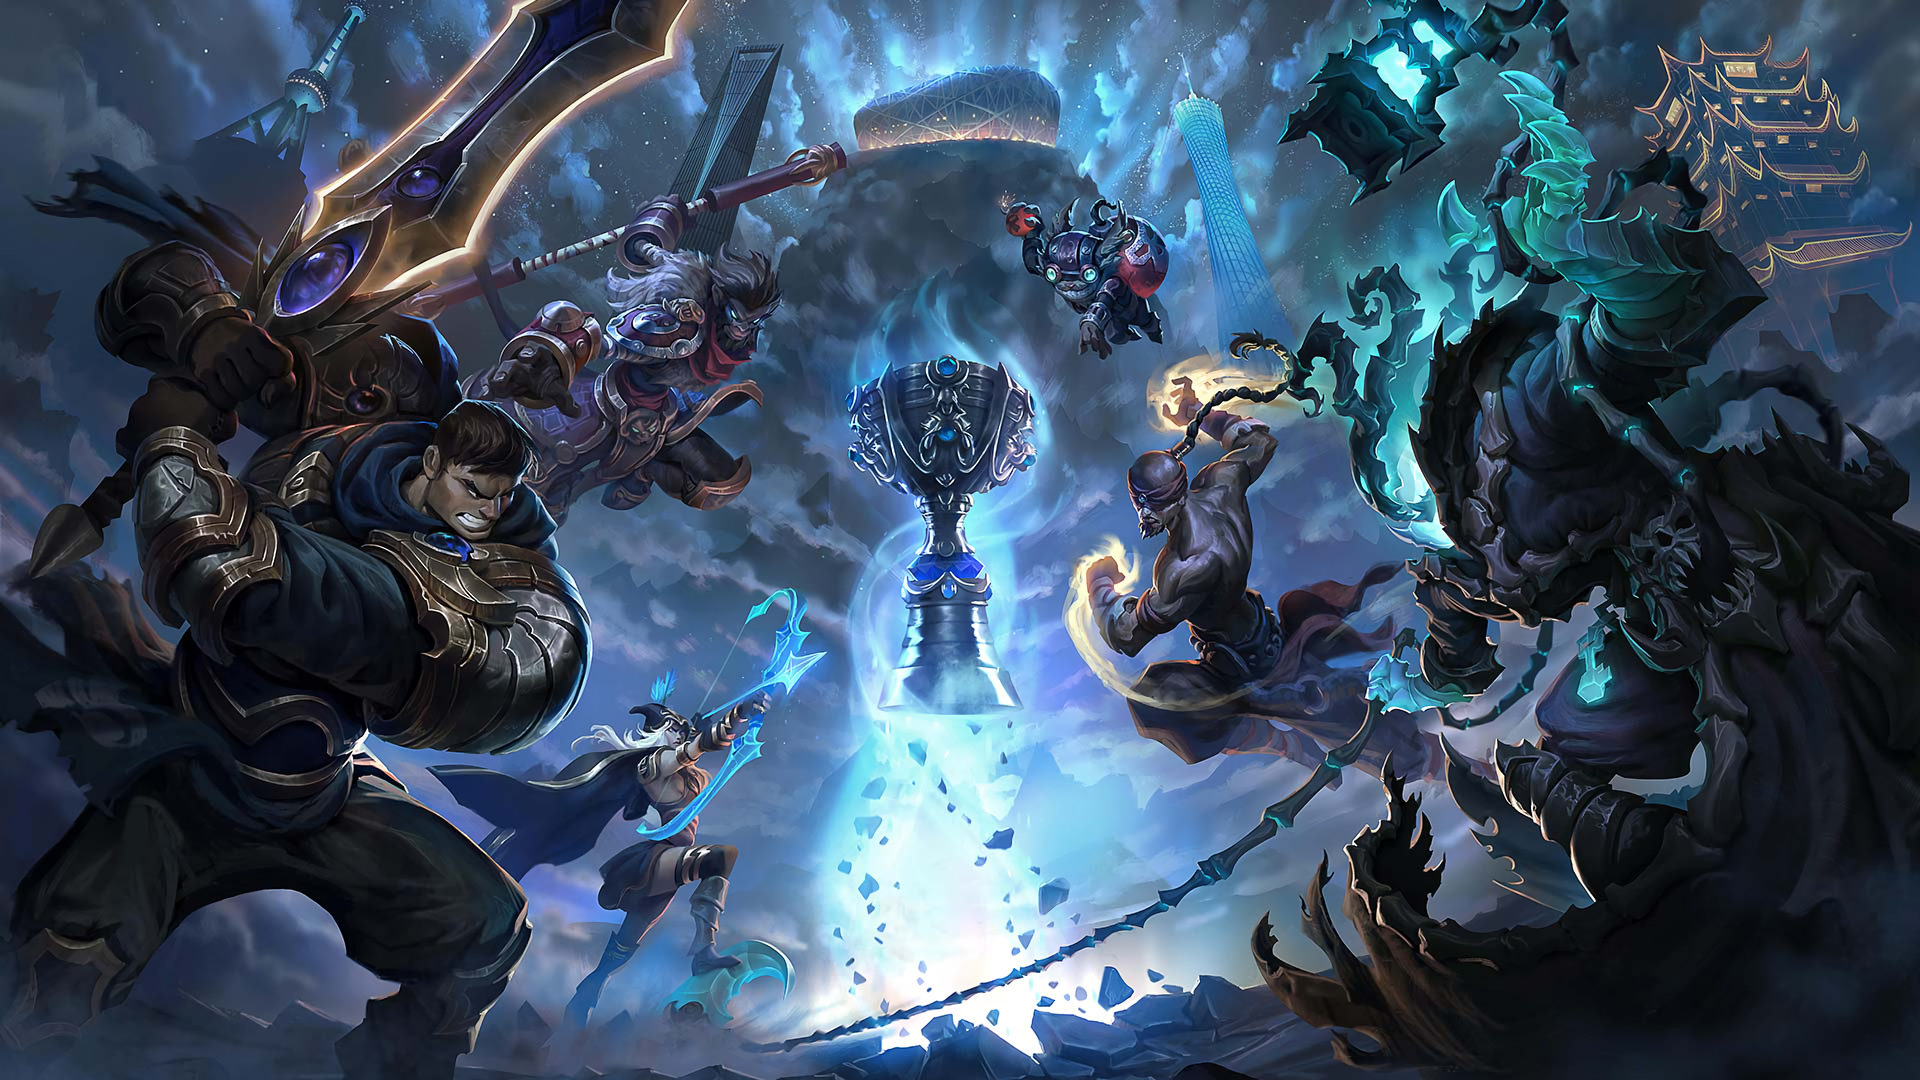 Worlds 2017 Promo Wallpapers League Of Legends